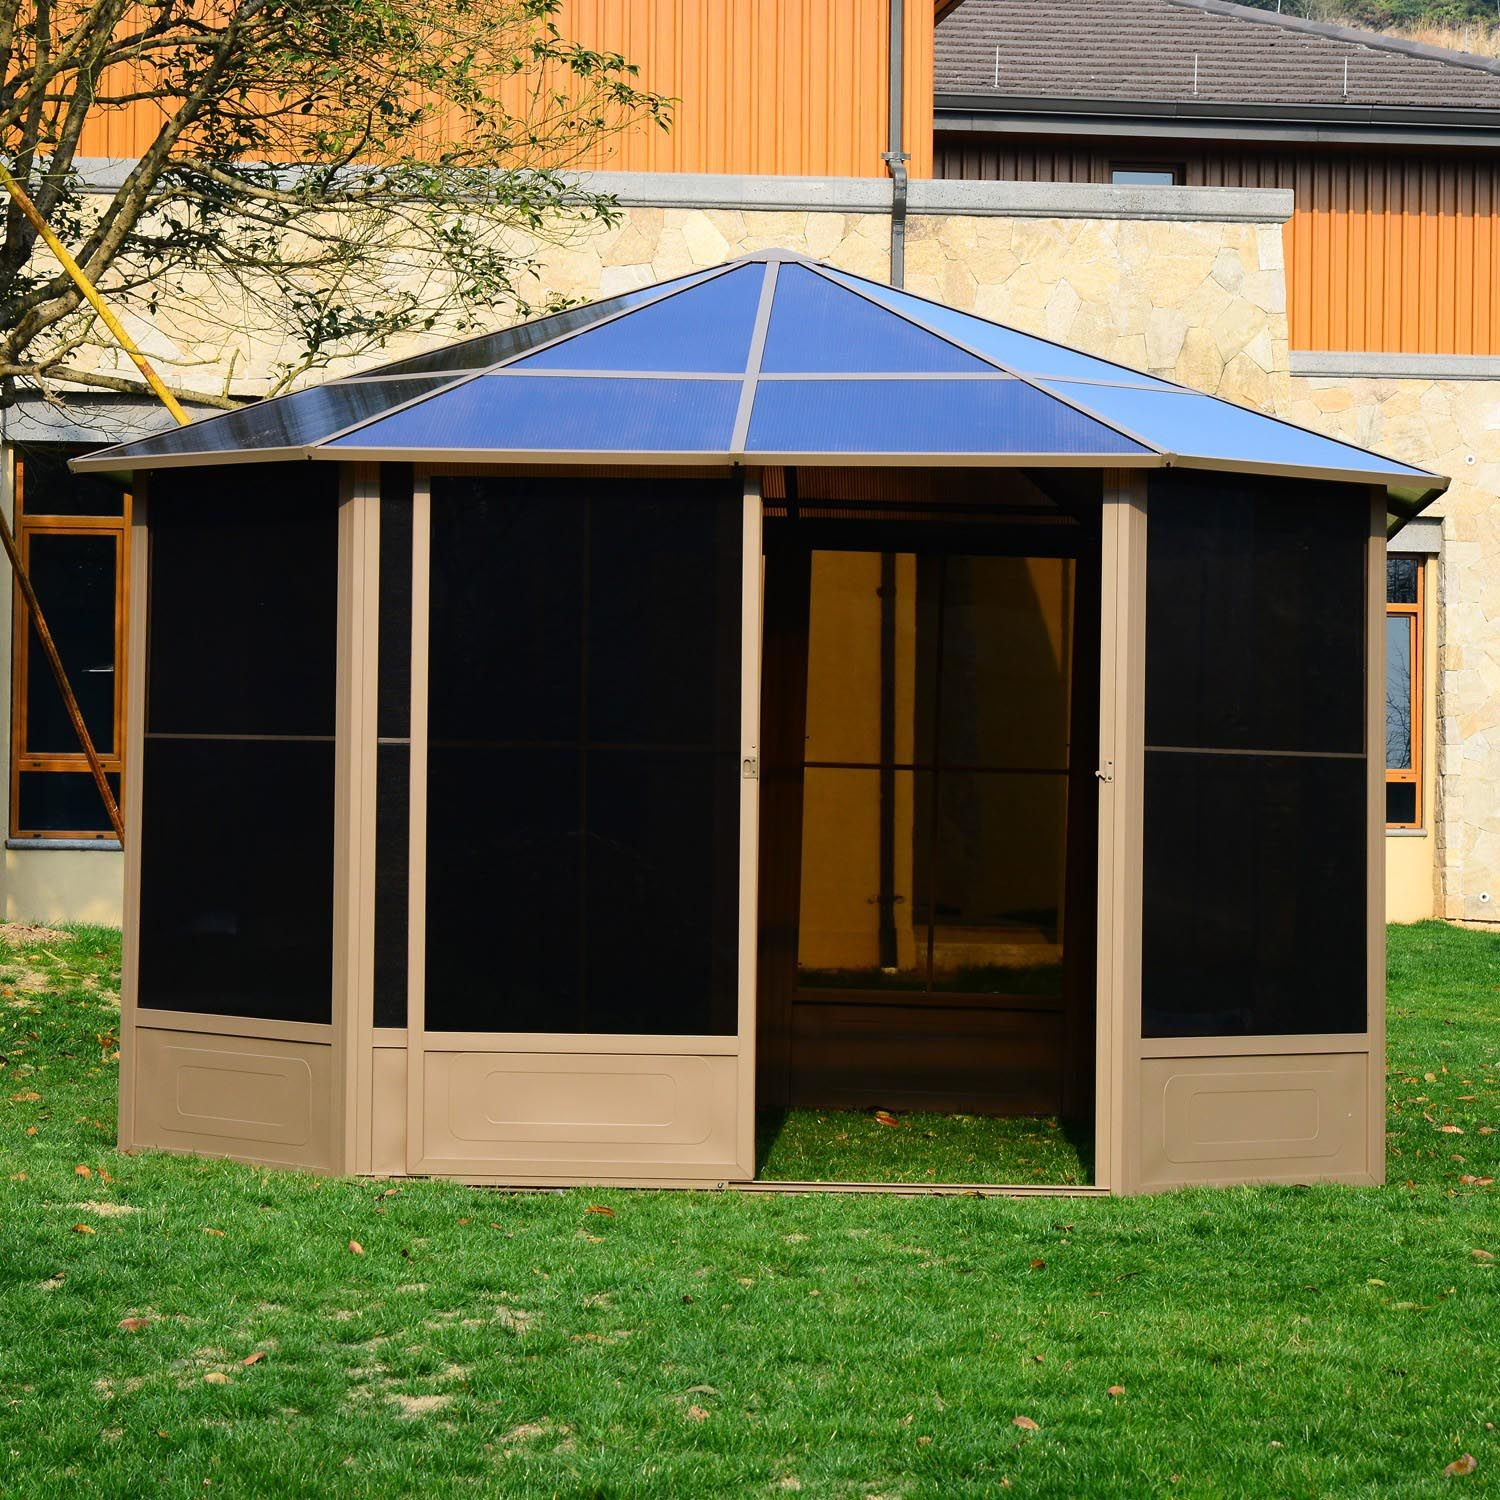 Screened Gazebo Tent for You  Gazebo Tent With Screen. Gazebo tent with screen. & Gazebo Tent with Screen | Pergola | Pinterest | Gazebo tent ...